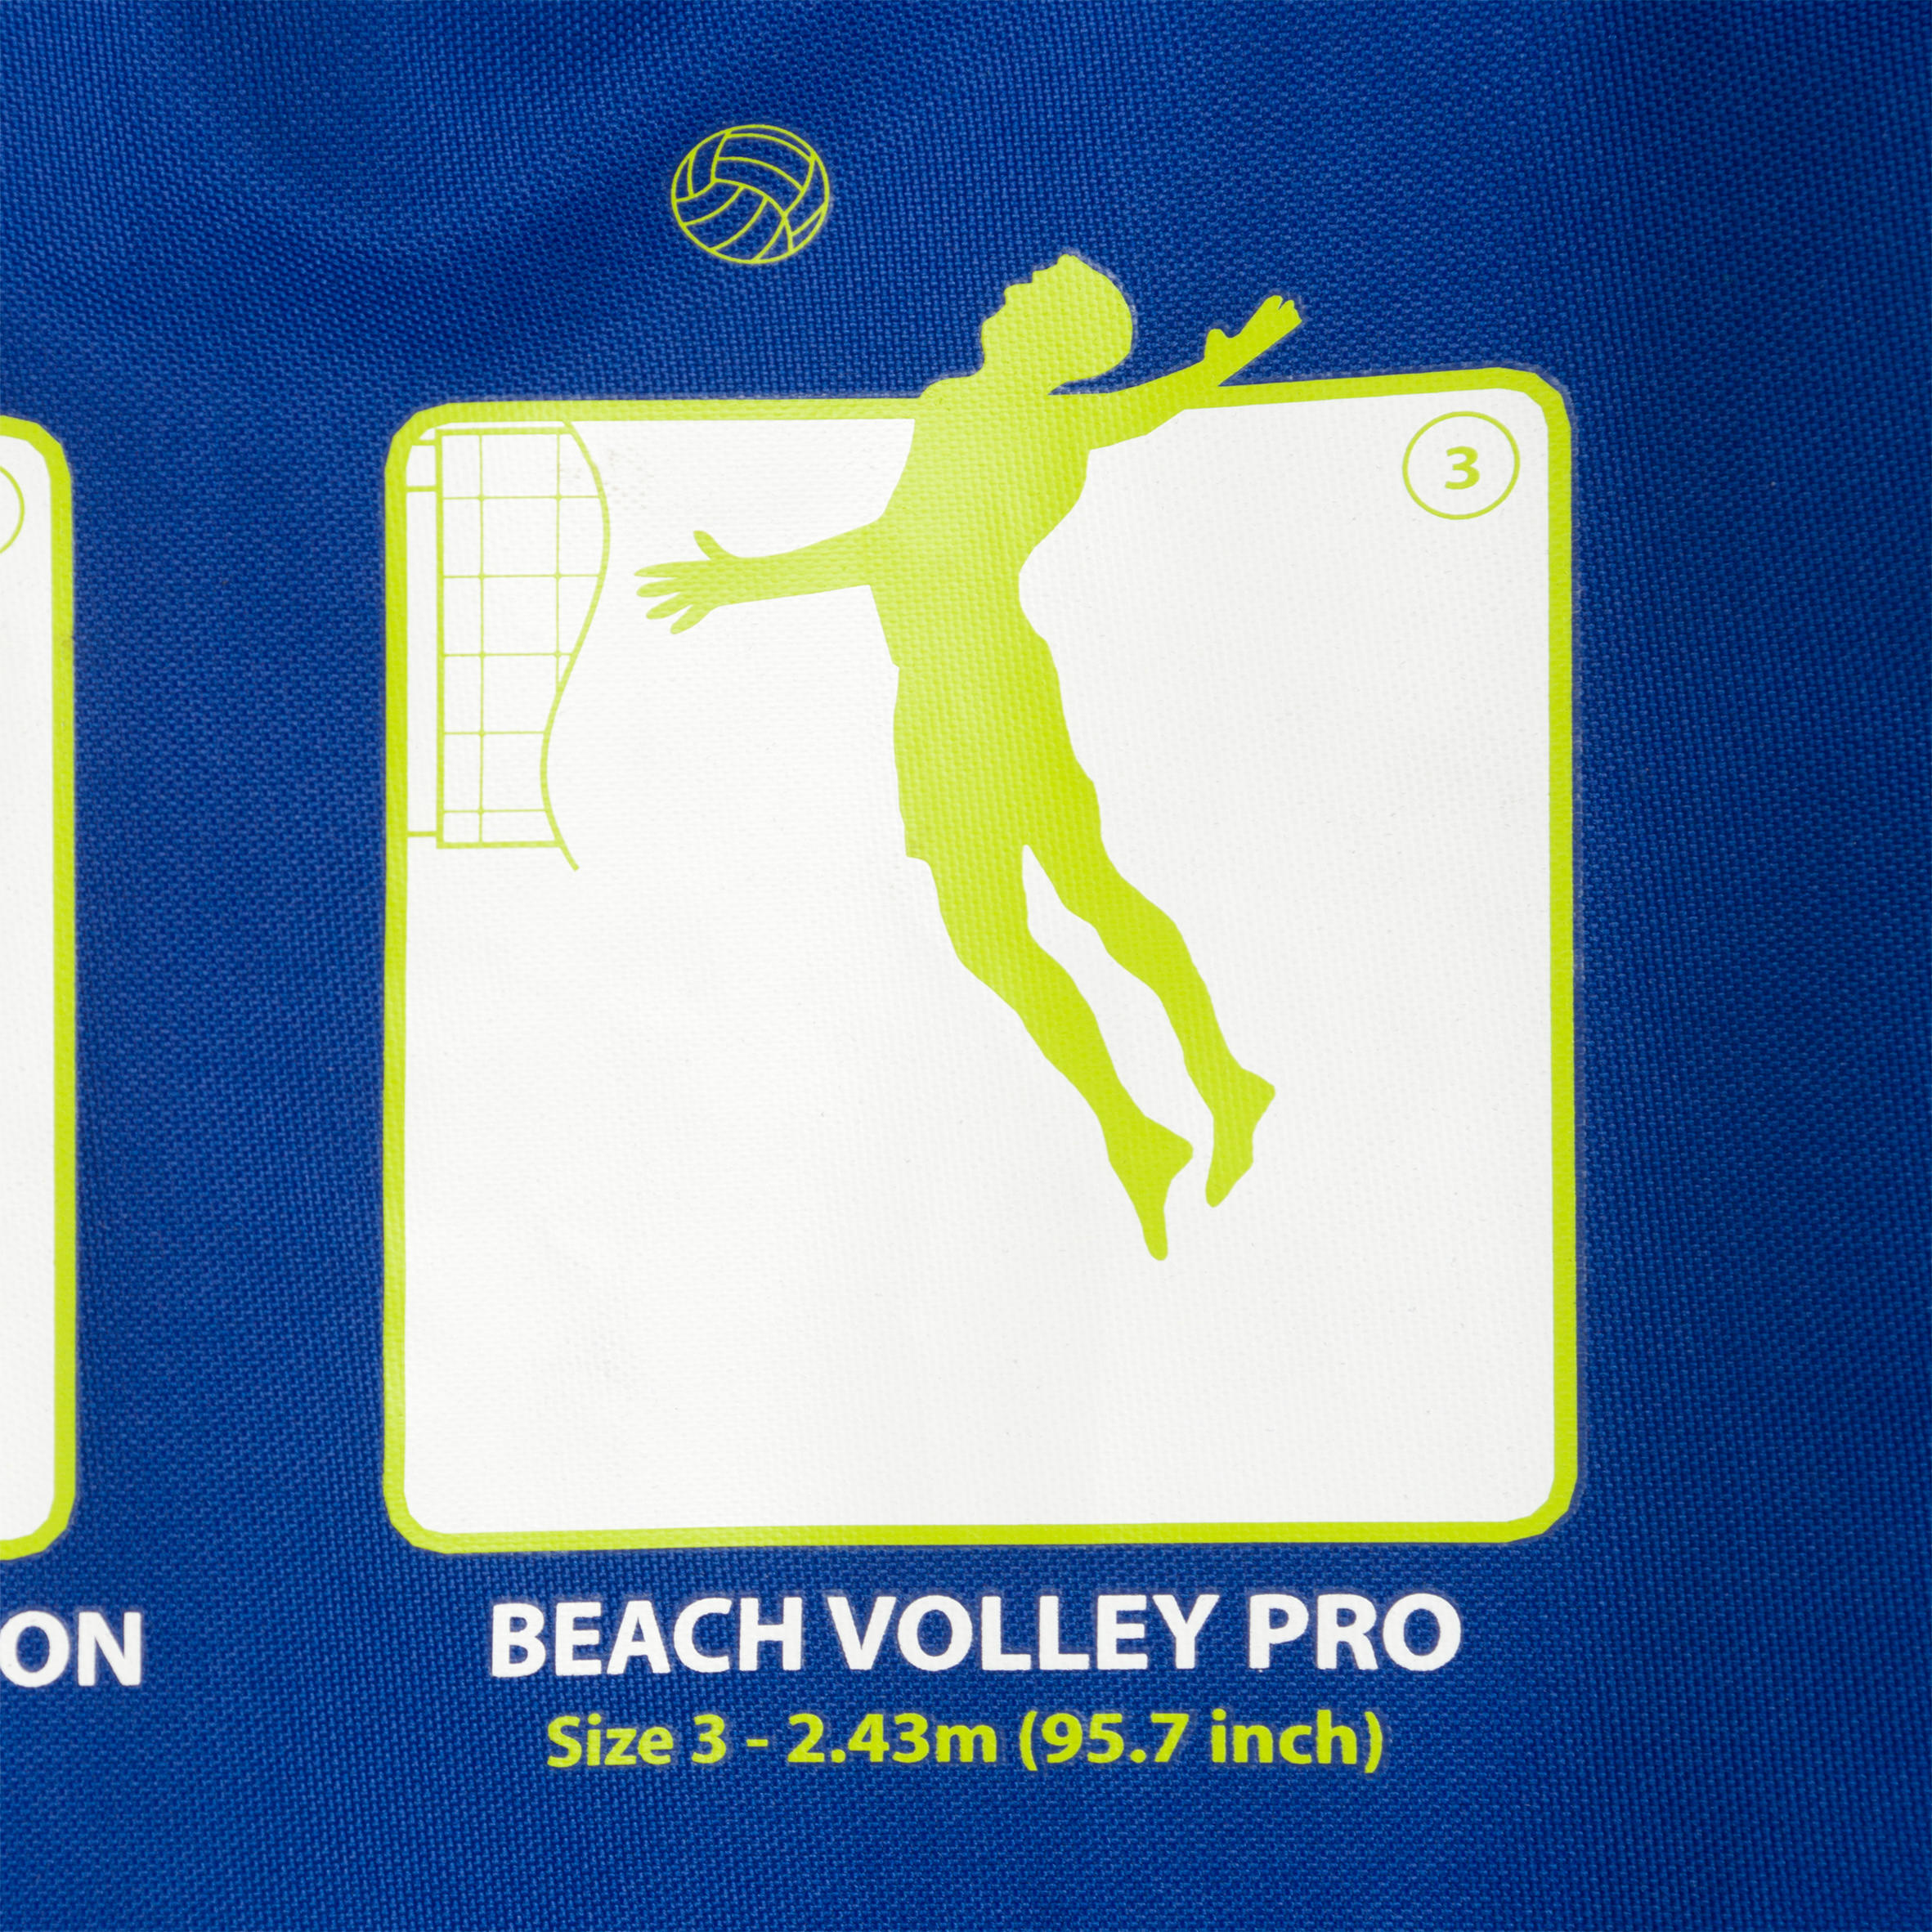 Filet de volleyball de plage VP 500 bleu